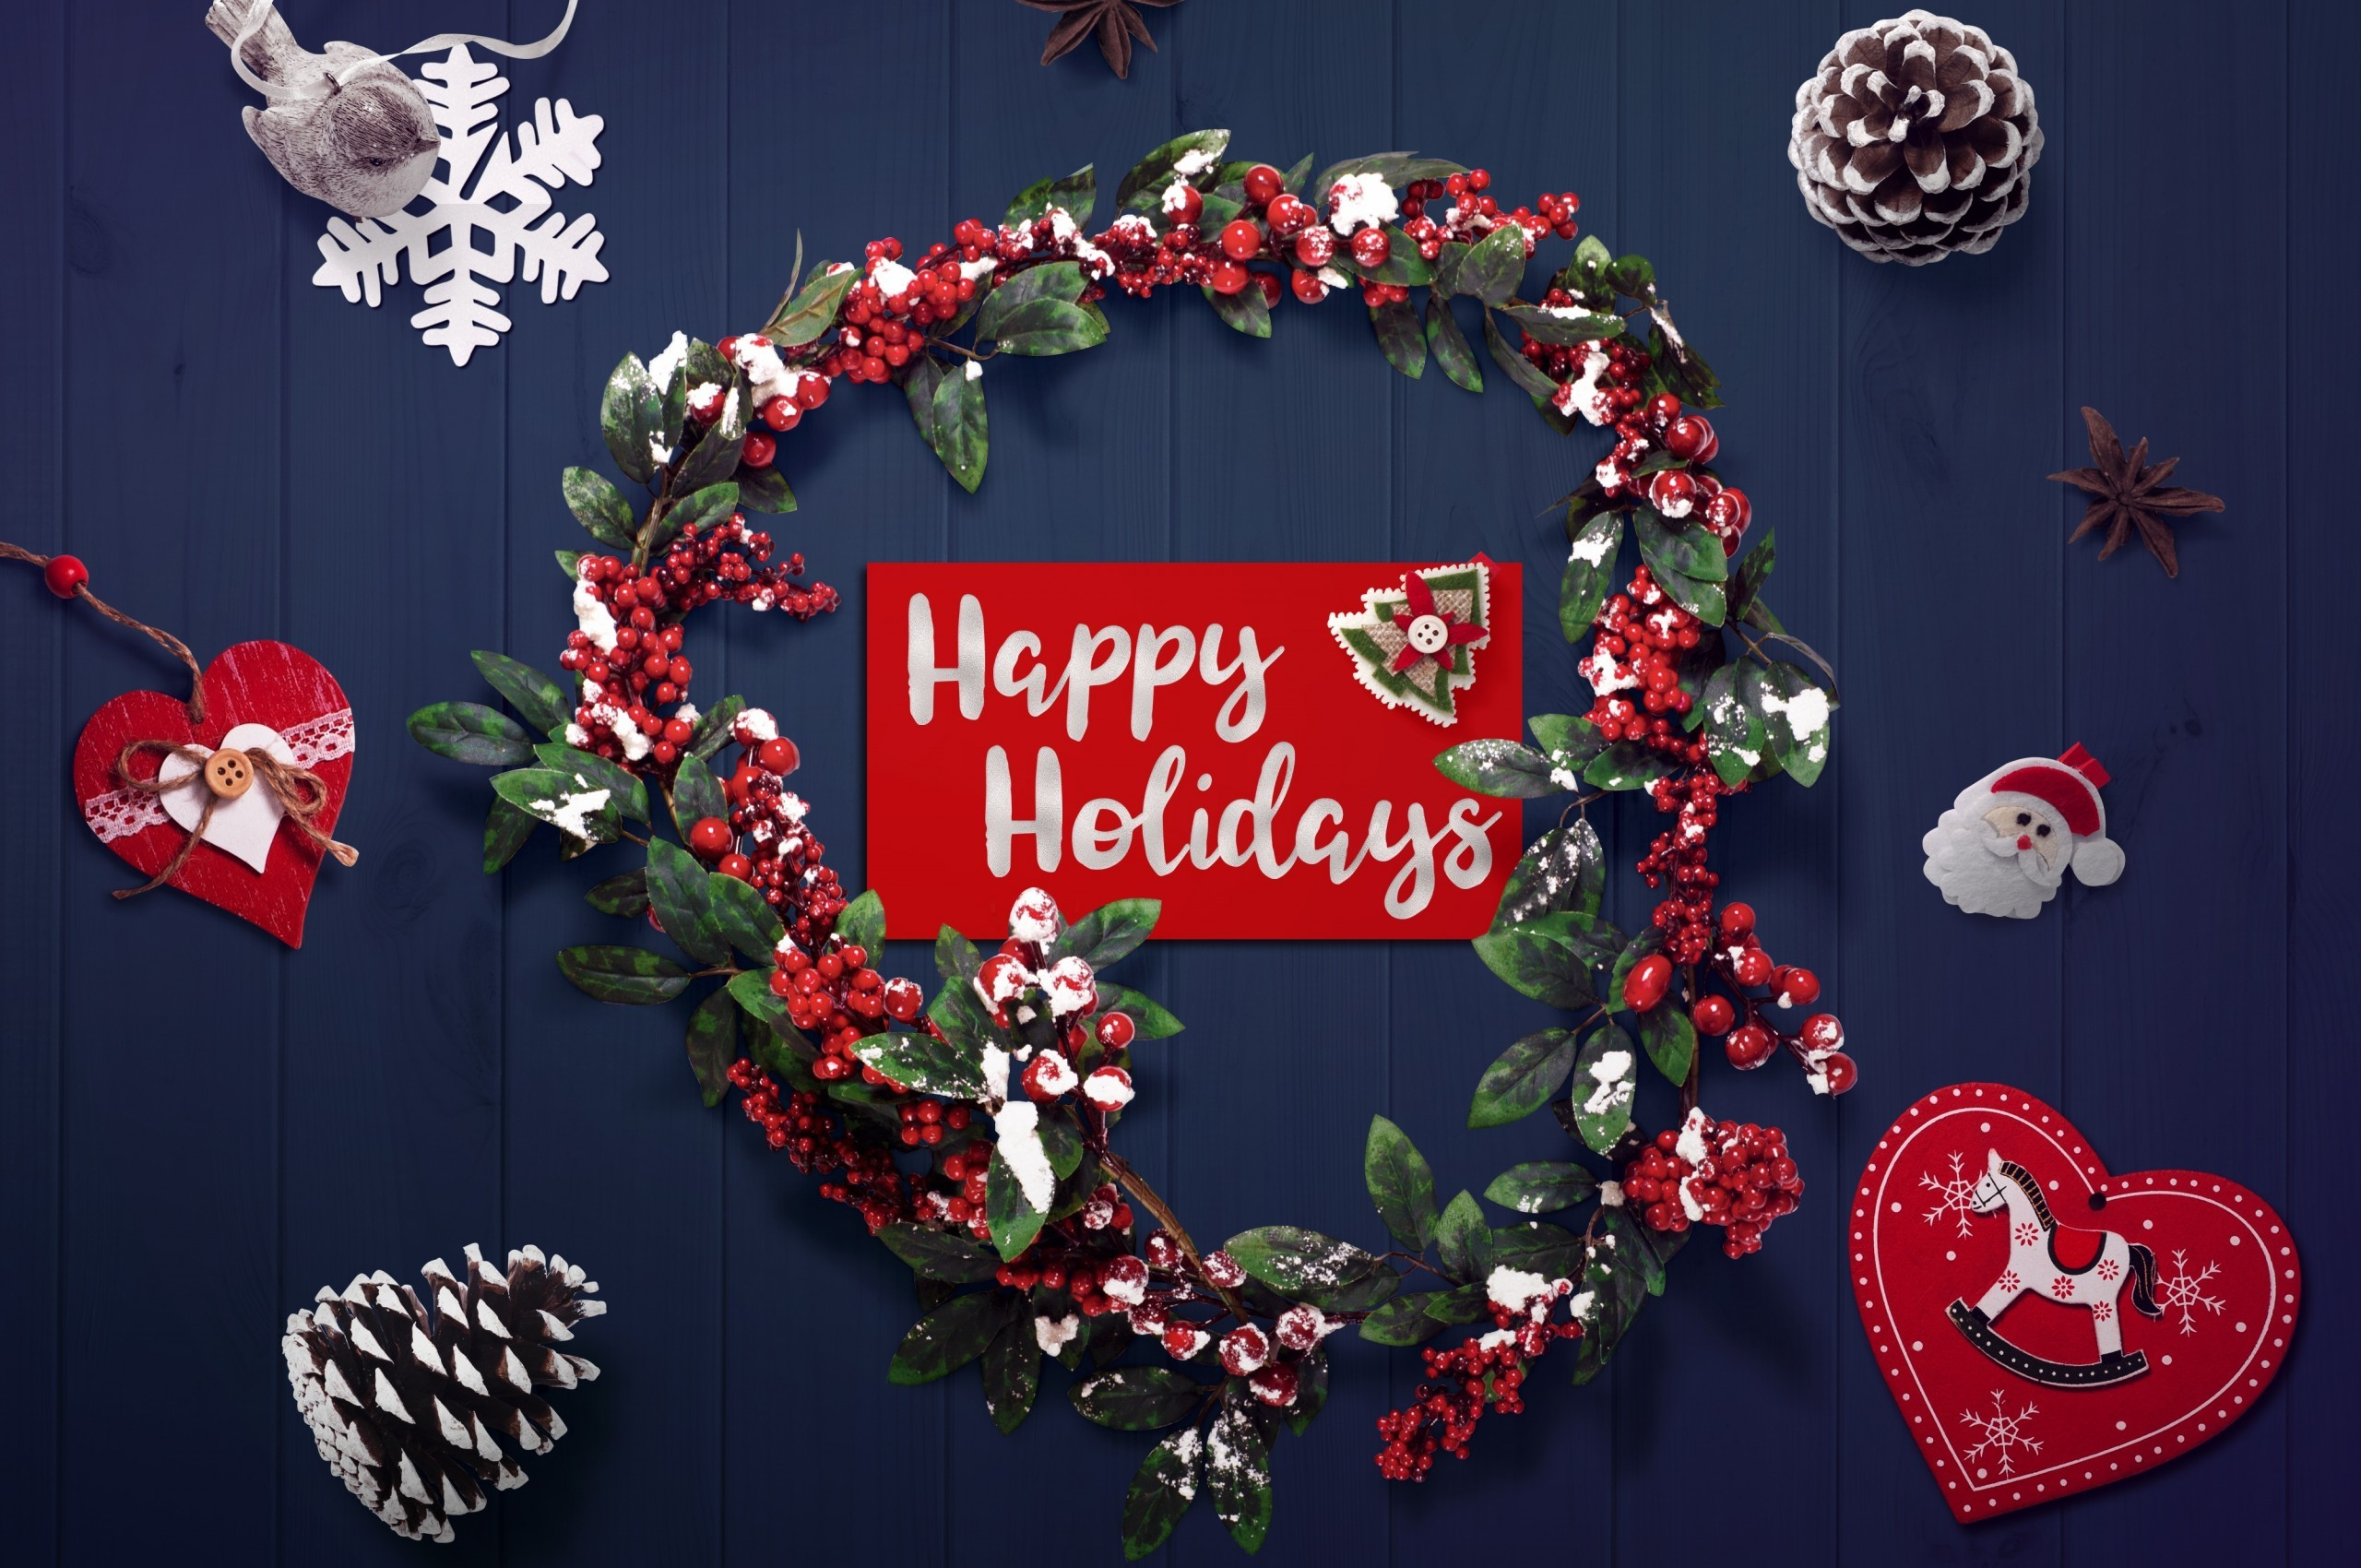 Download 2560x1700 Merry Christmas 2020 Decorations Happy 2560x1700